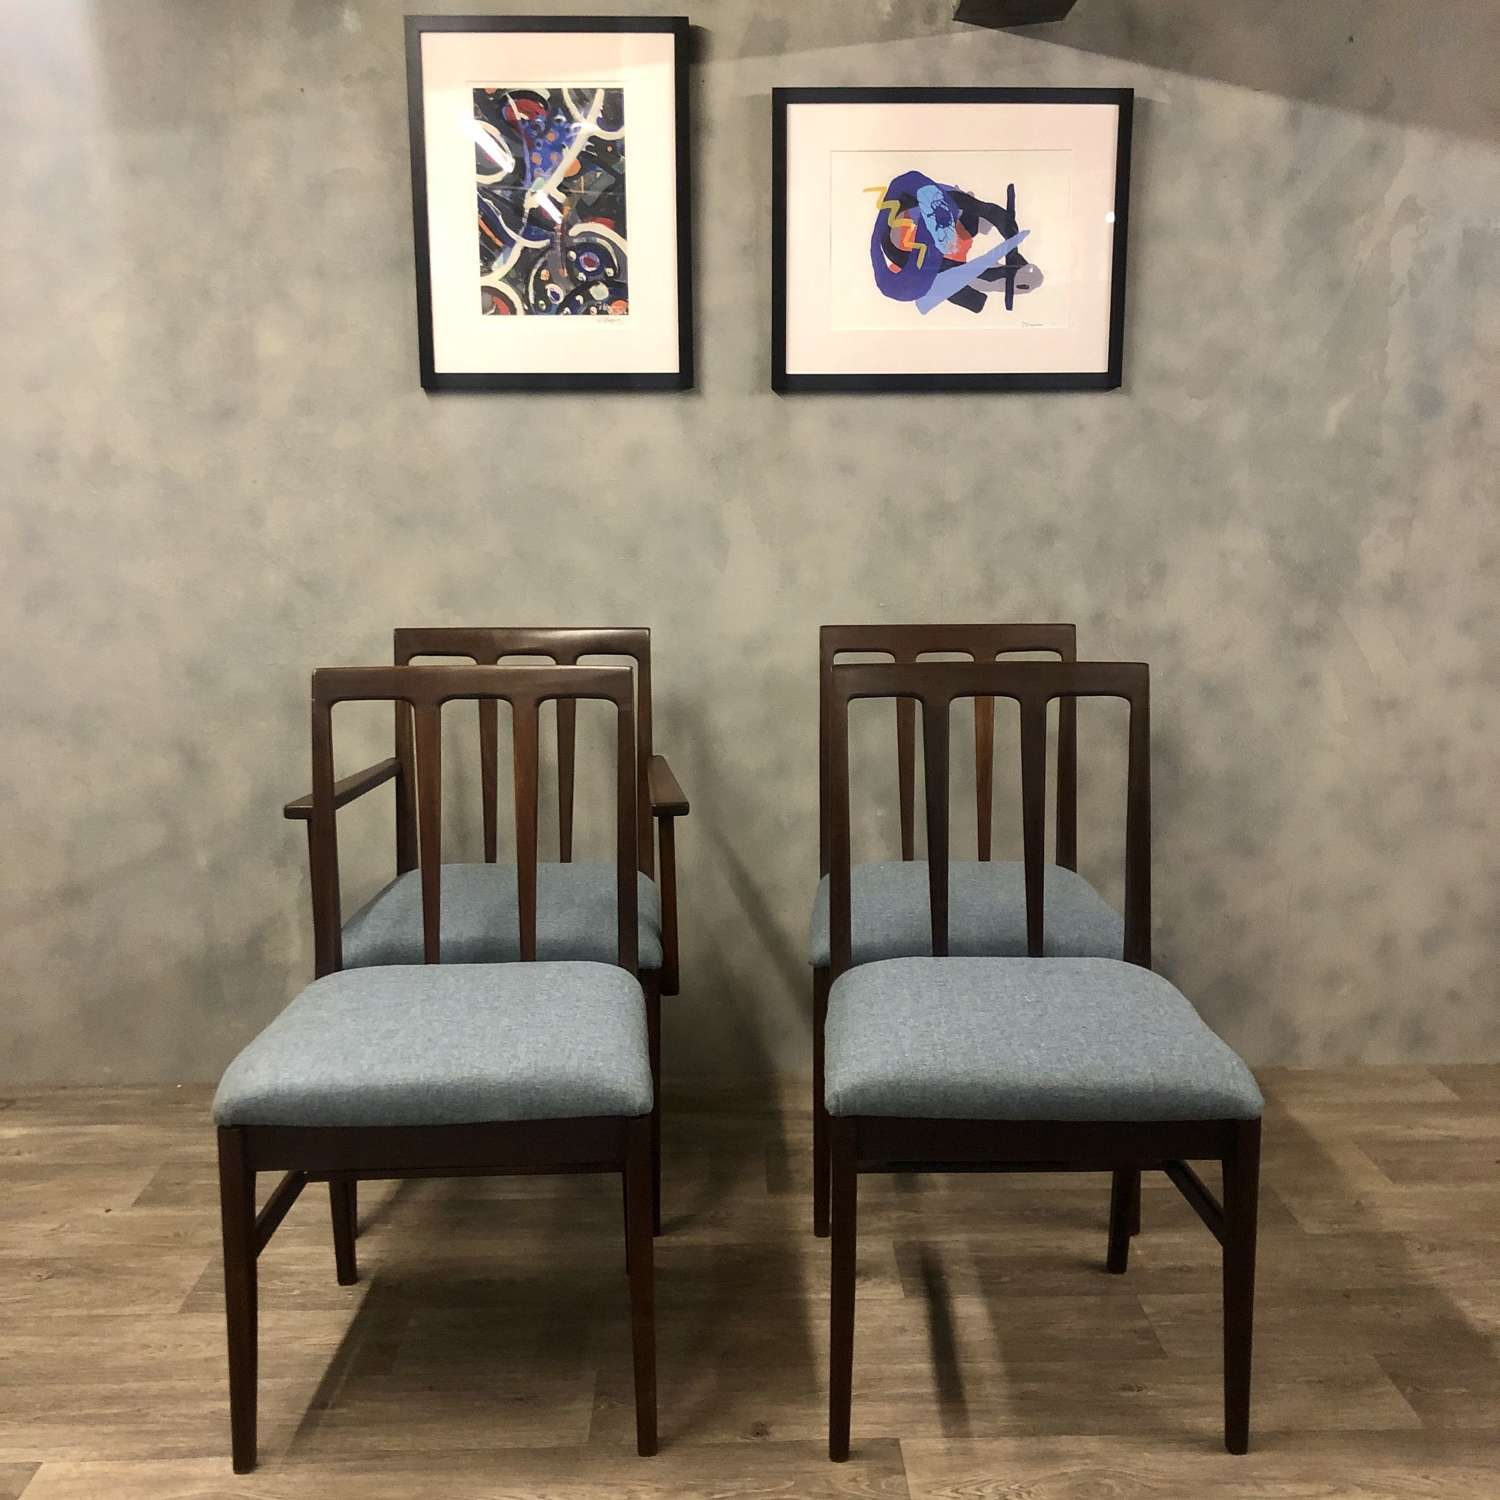 Sleek and stylish Midcentury A Younger dining chairs